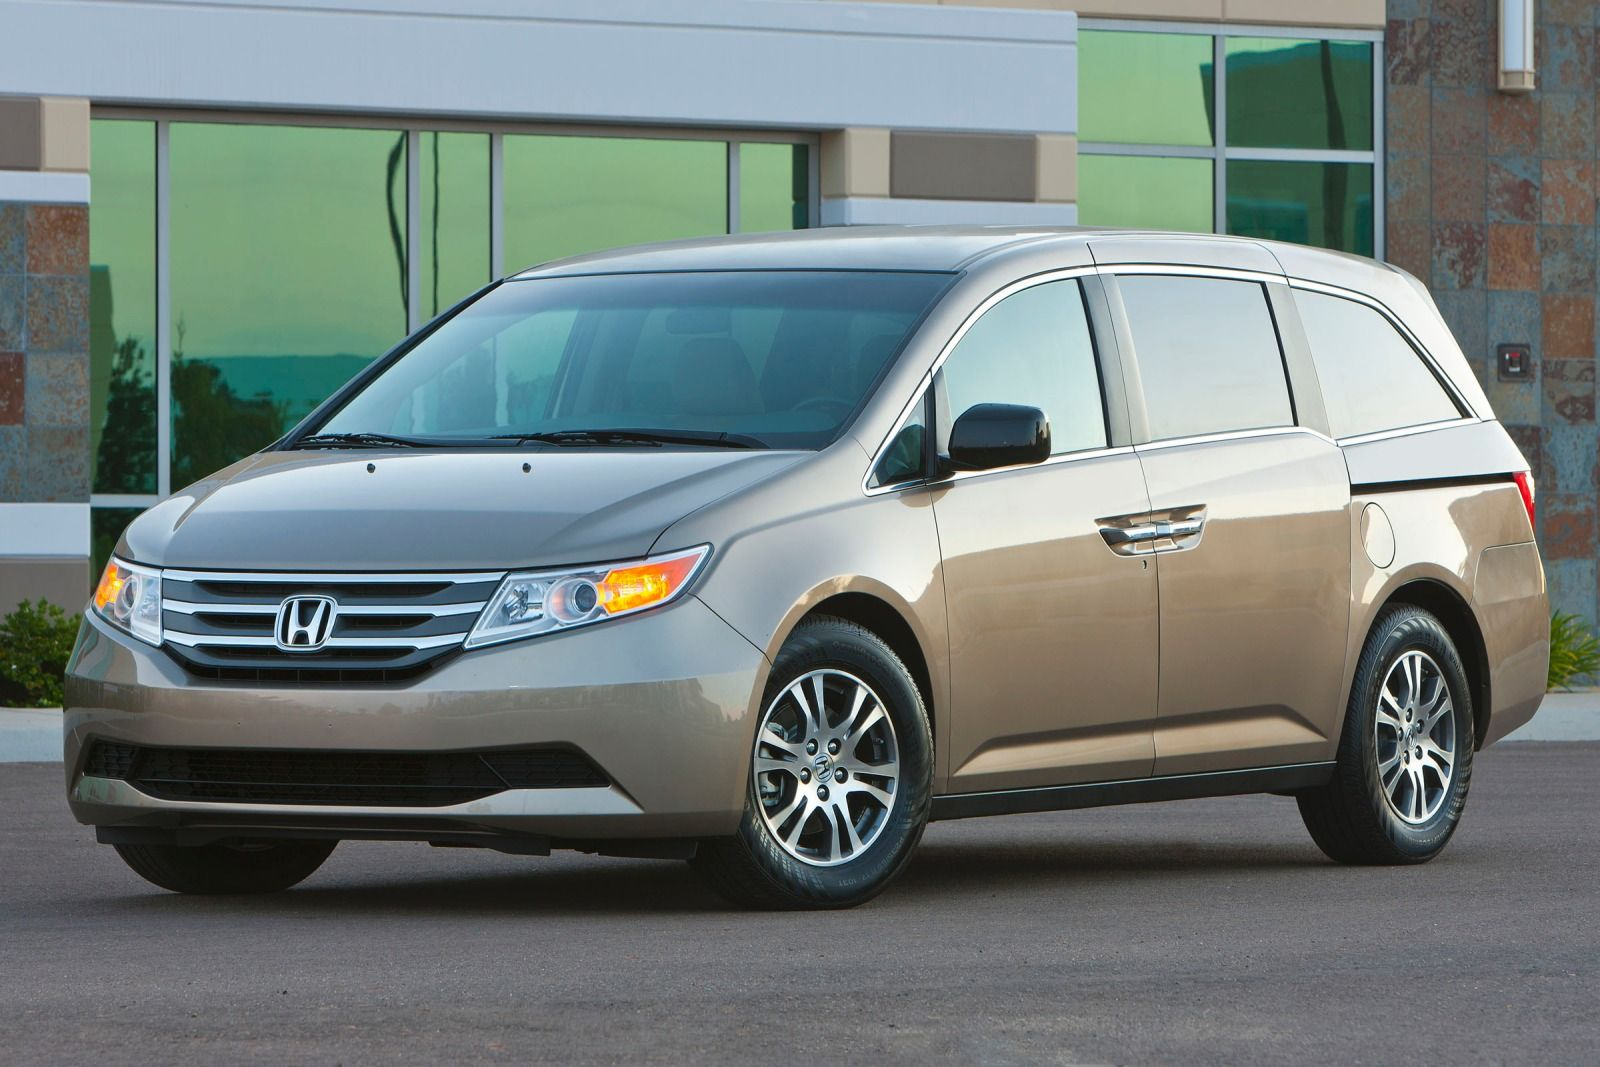 2012 Honda Odyssey Iv Pictures Information And Specs Auto Cr V Wire Diagram Cars 5